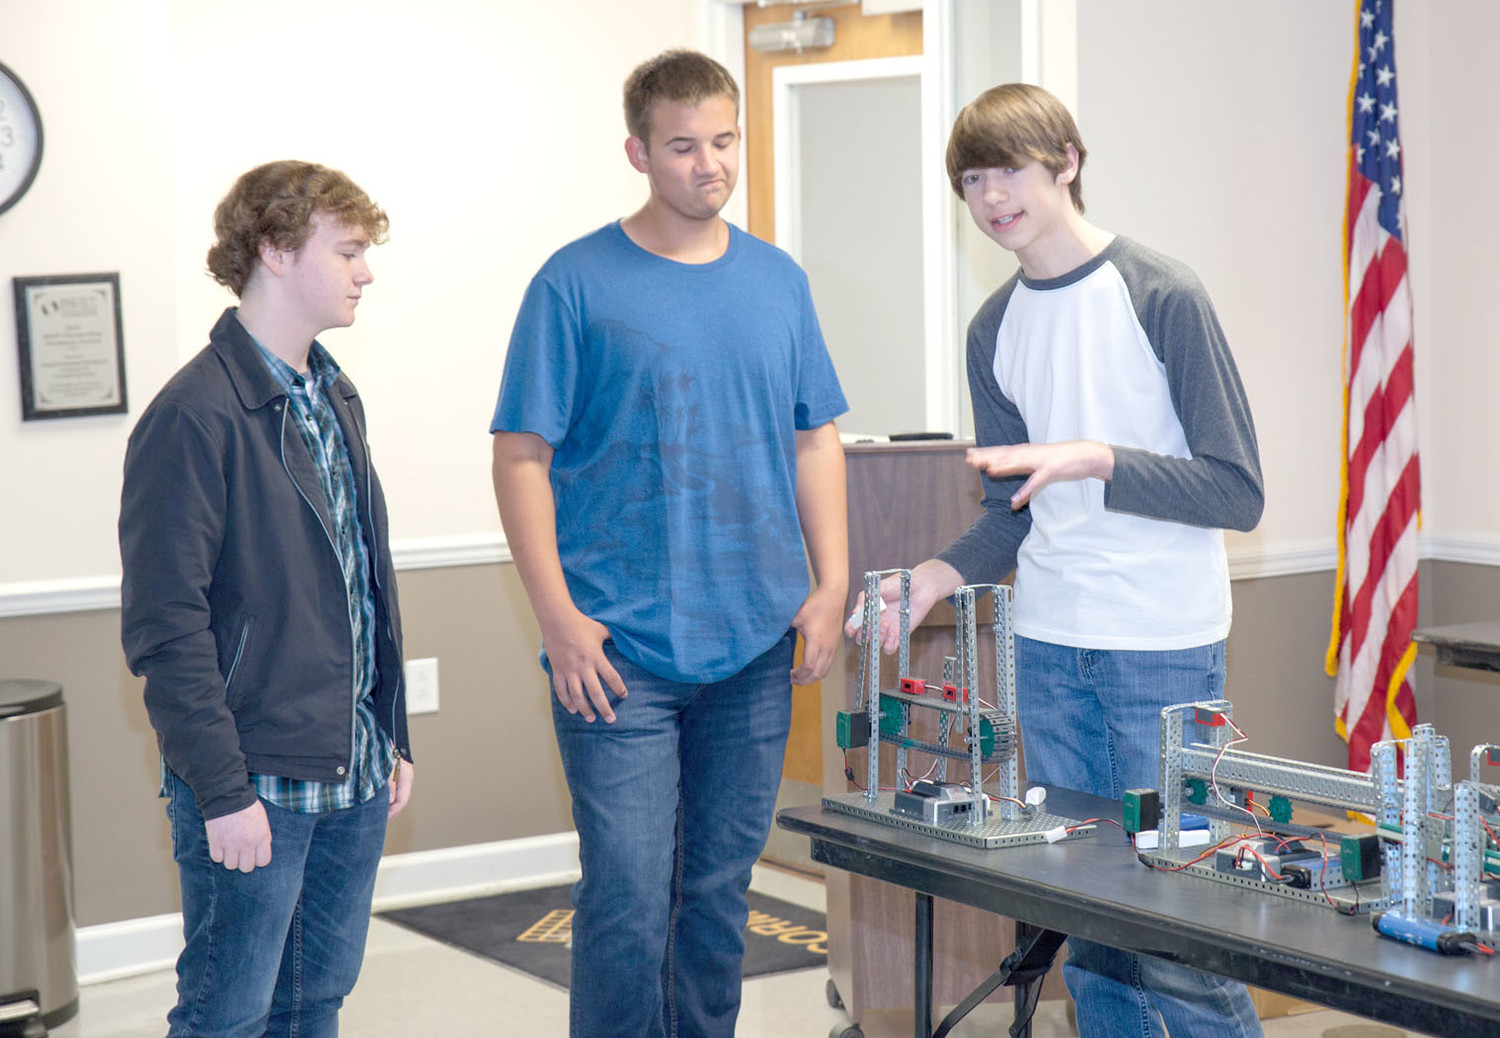 BEN WILLIAMS' ENGINEERING STUDENTS were split into four teams working towards the same goal:  a working model simulating the synergy between the different components in a manufacturing environment.  Each team worked to achieve their individual module's purpose, while keeping the entire project's parameters in mind, such as height, transition, and consistent speed.